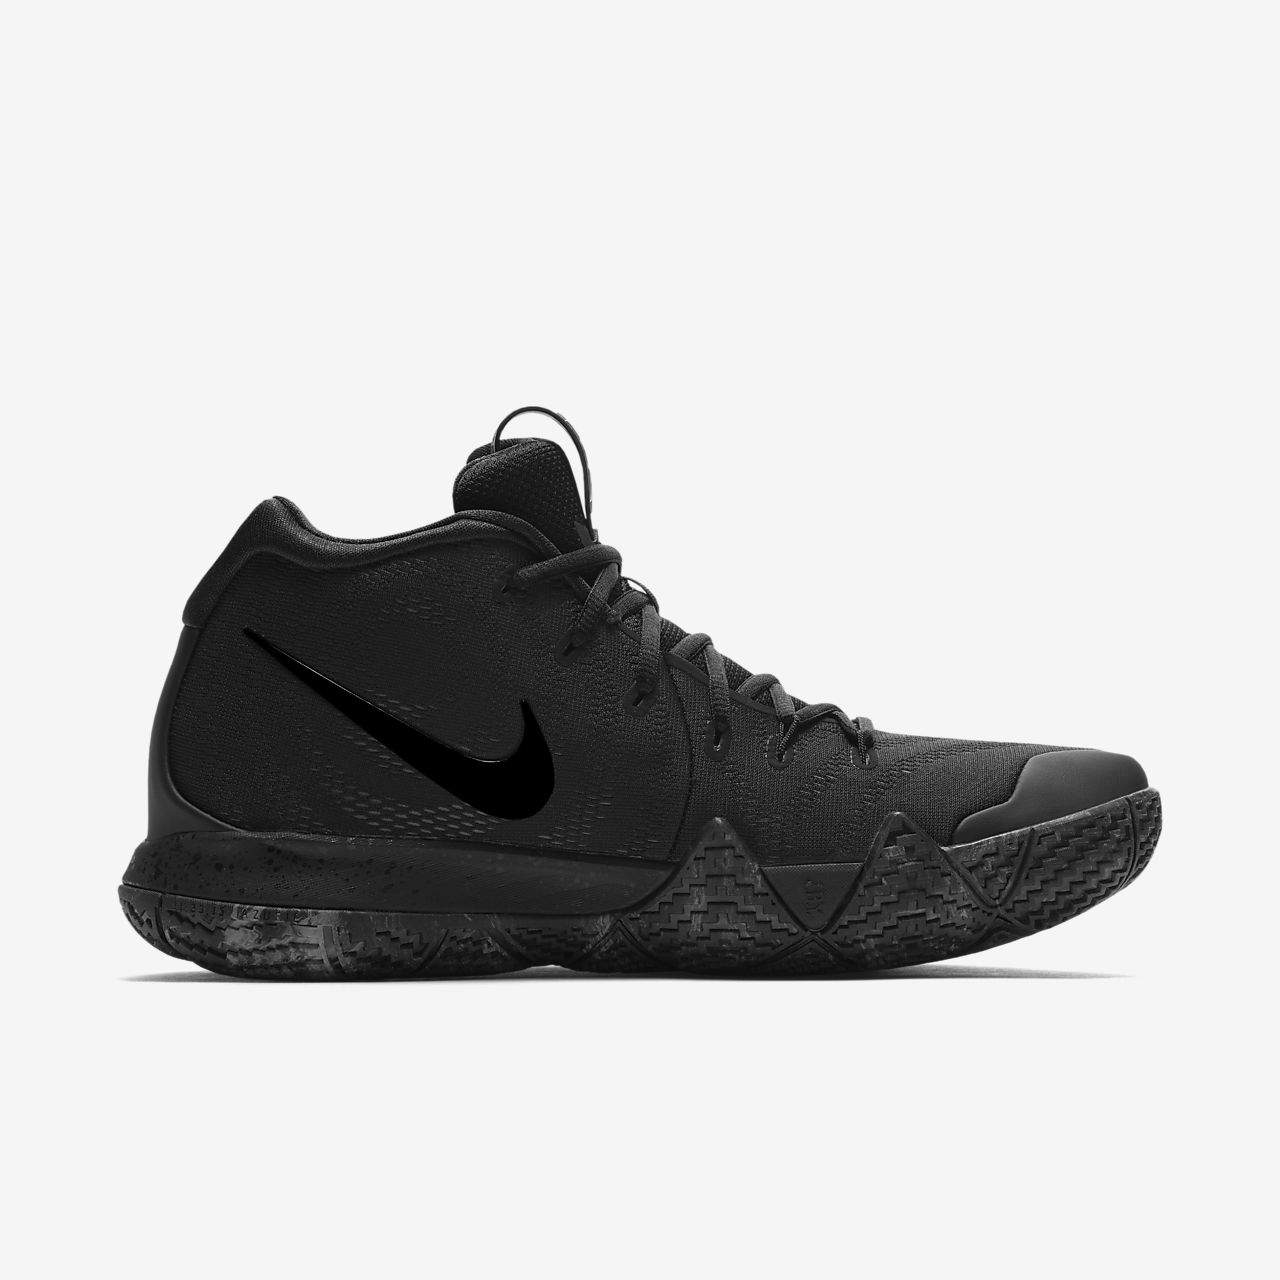 0fd0dbf494e6 Low Resolution Kyrie 4 Basketball Shoe Kyrie 4 Basketball Shoe